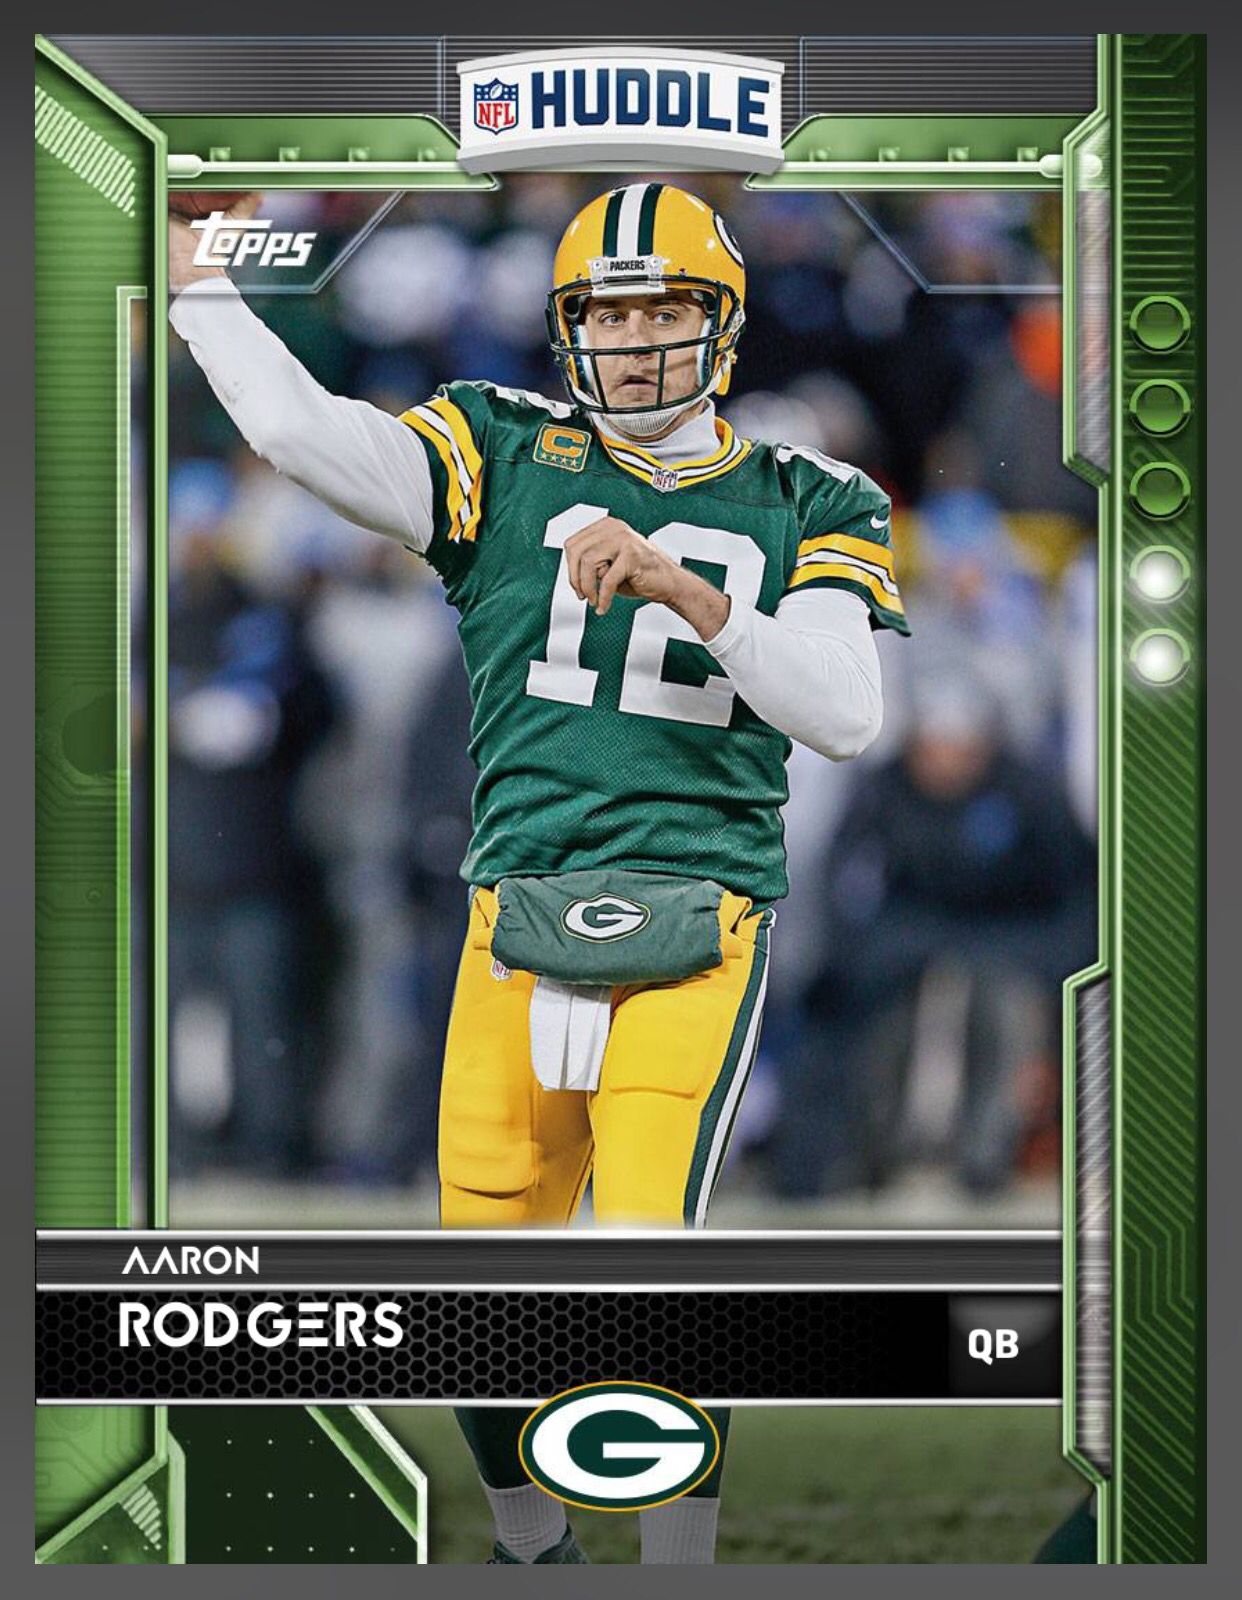 Aaron Rodgers Green Bay Packers Green Parallel Card 2016 Topps Huddle Green Bay Packers Players Rodgers Green Bay Football Cards